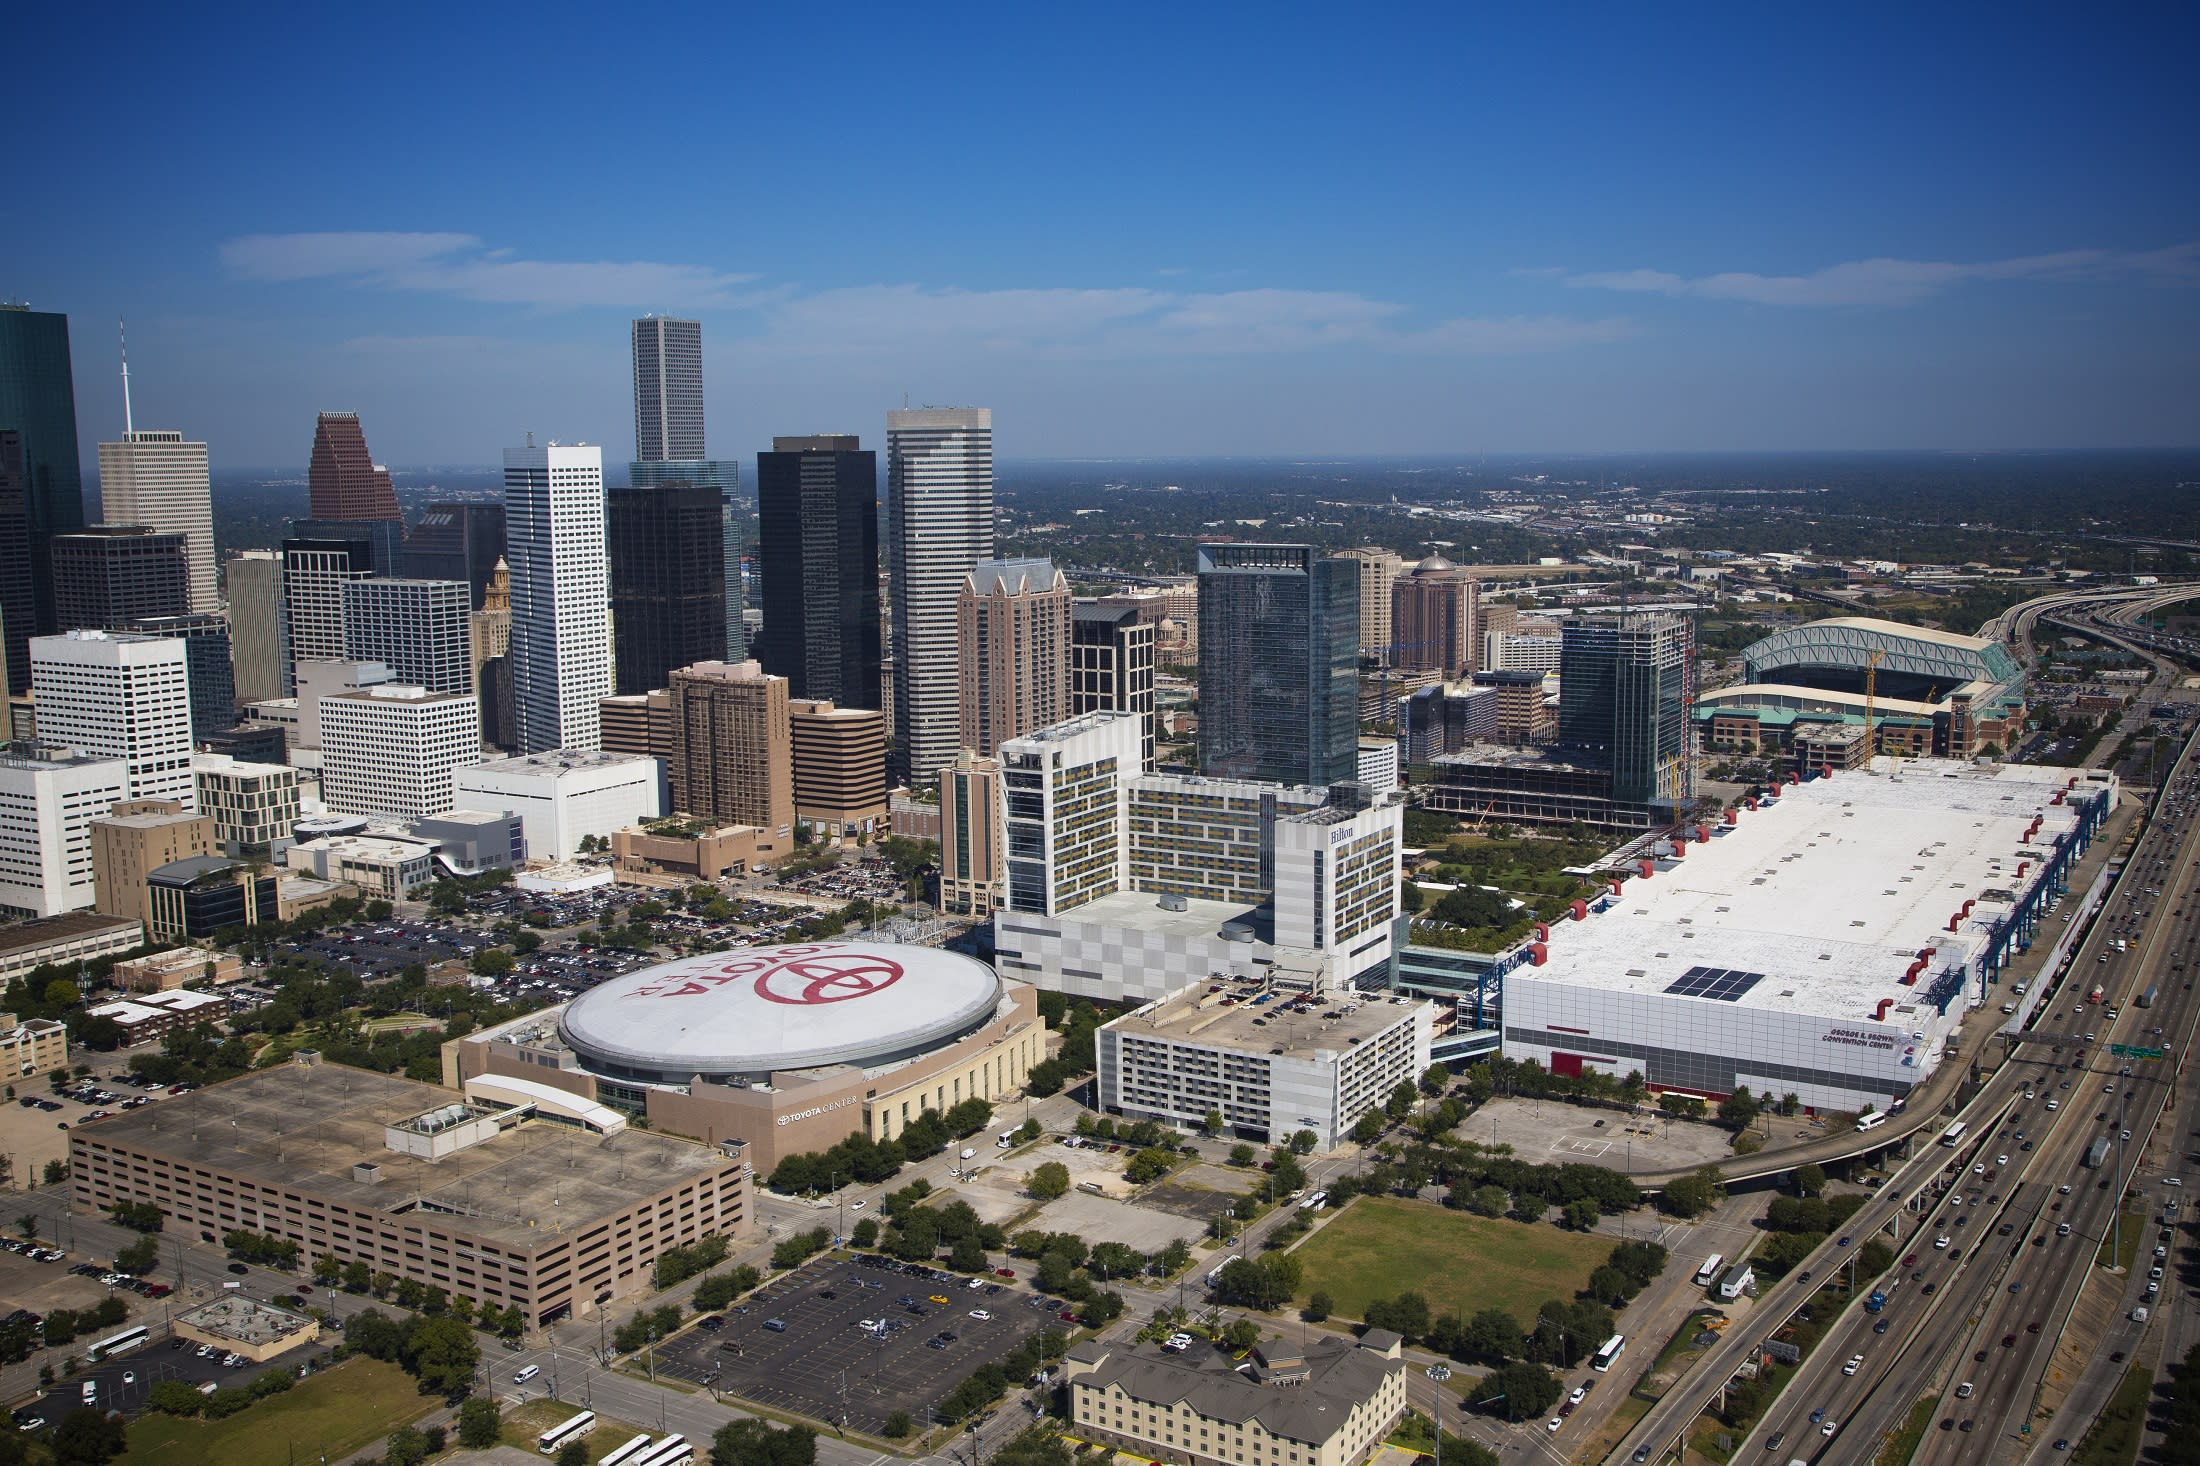 Daytime view of the Convention District Skyline in Houston, Texas.